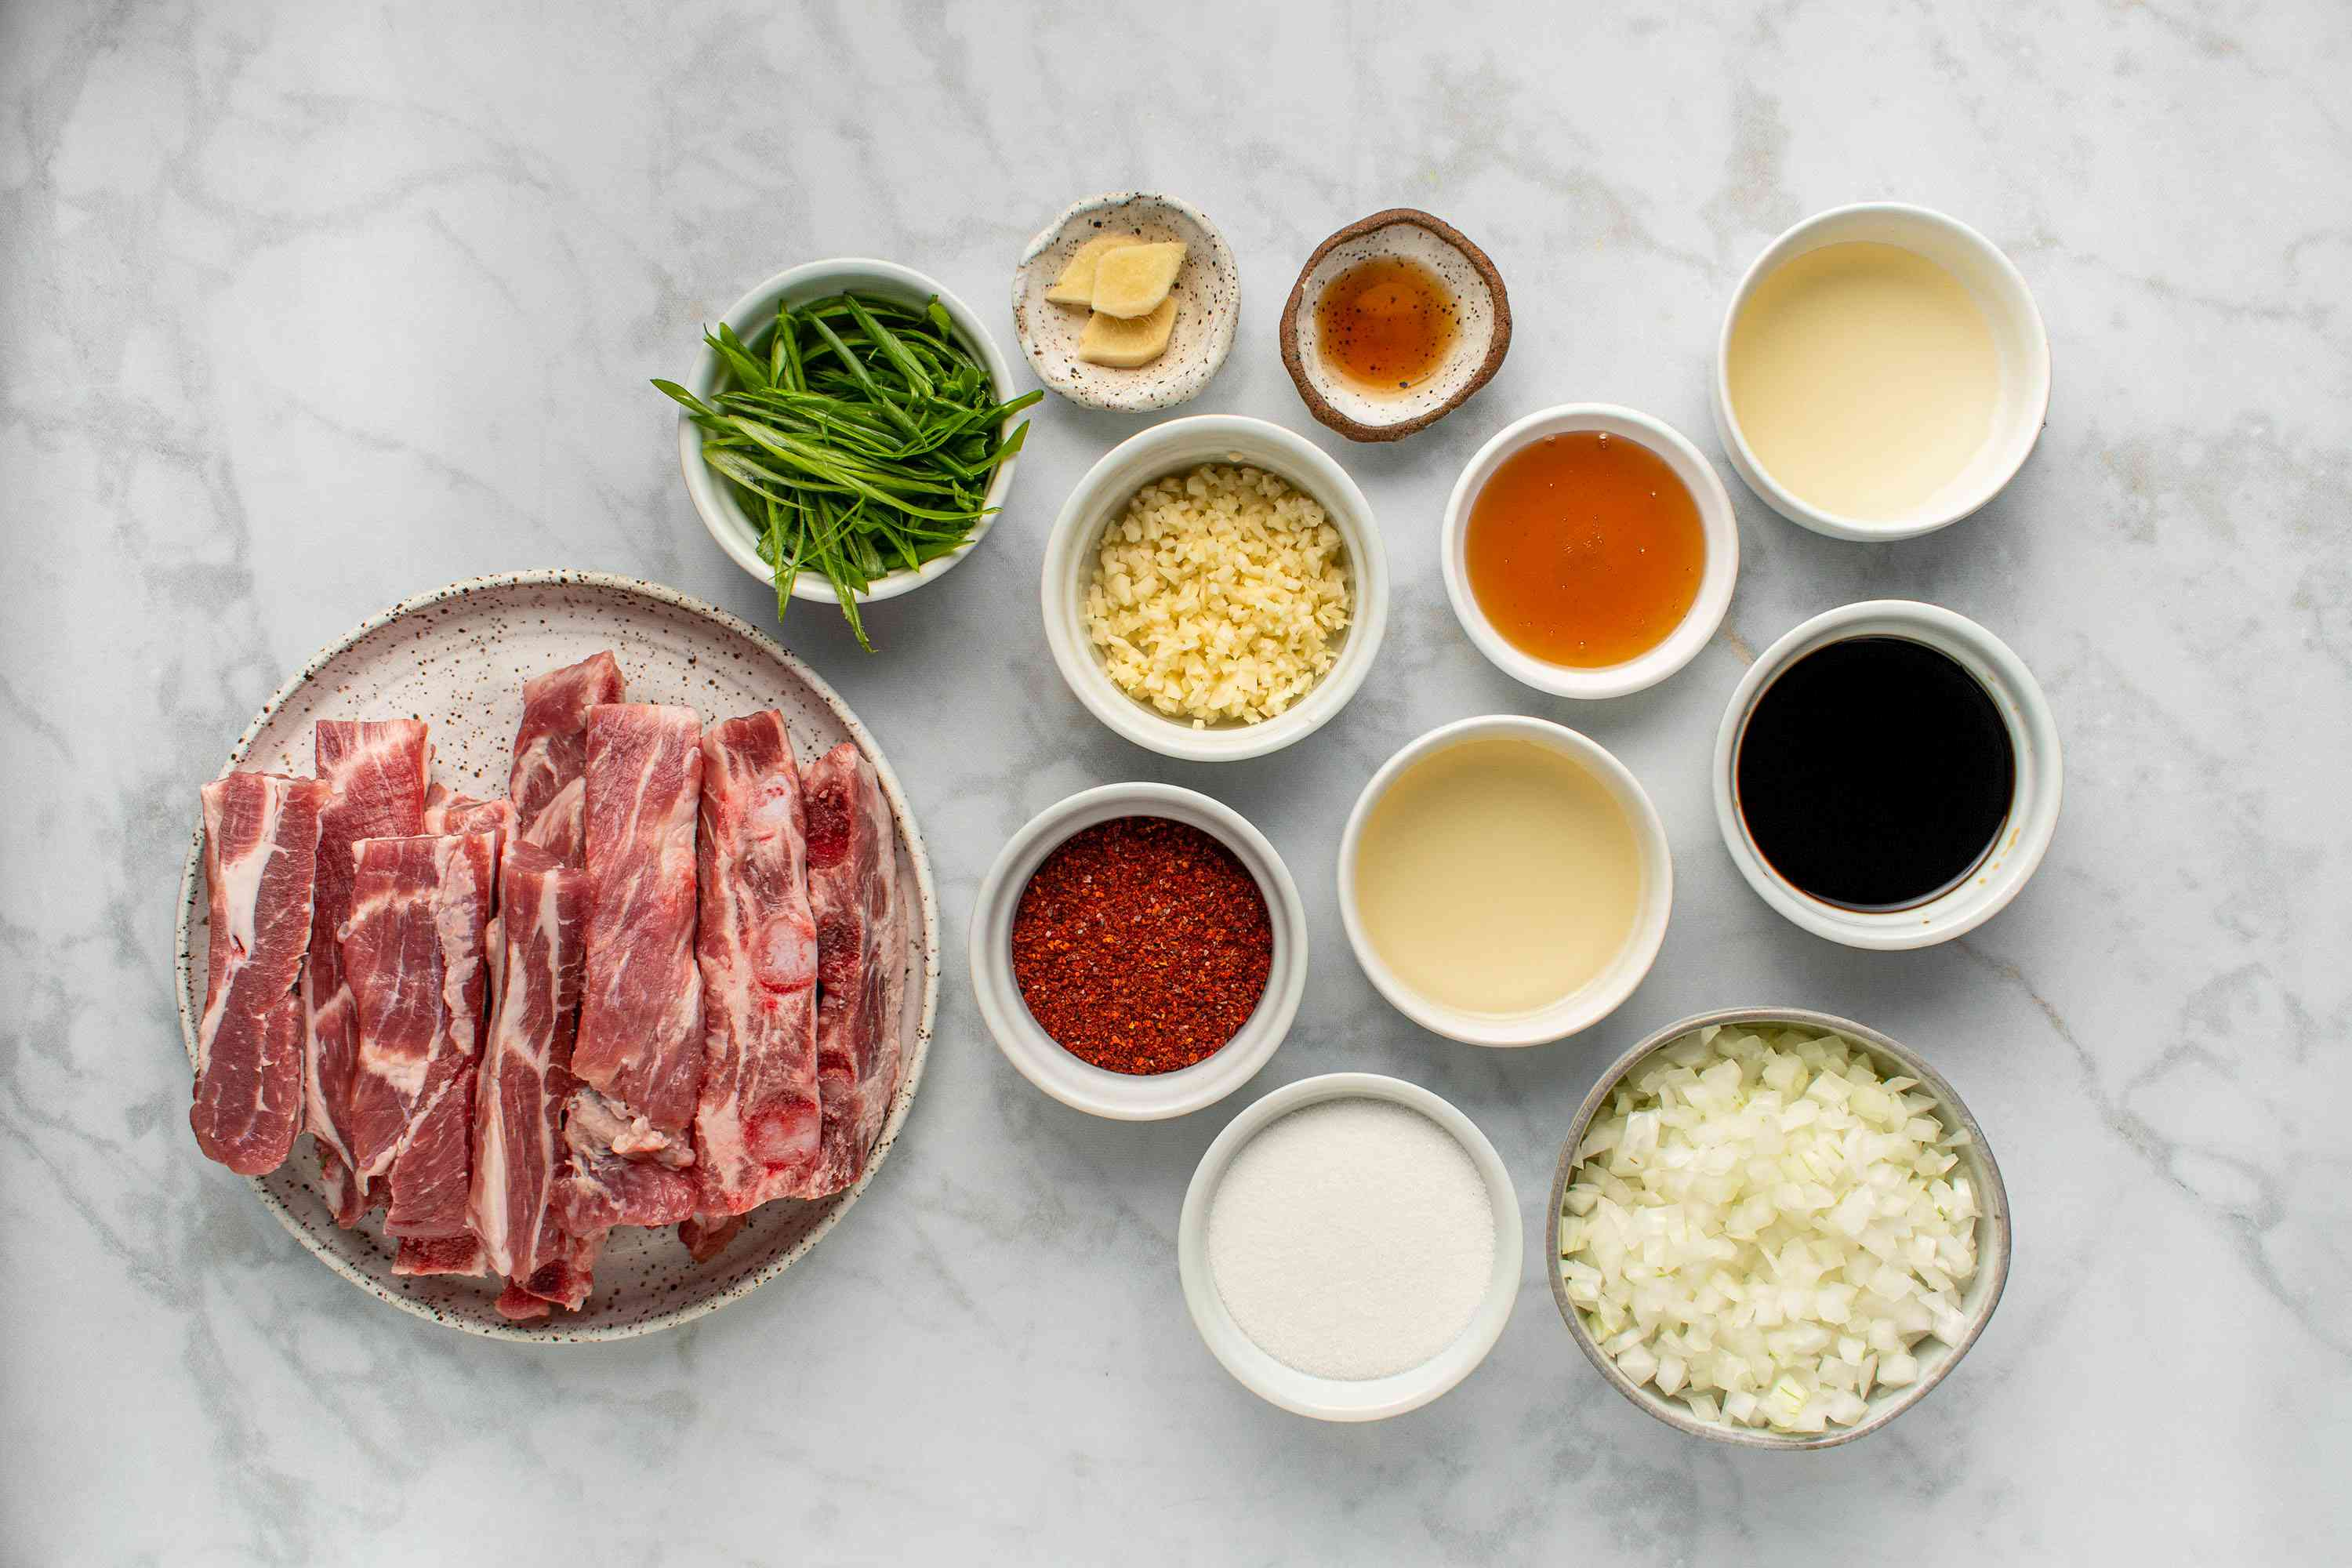 A Recipe for Korean Sweet and Spicy Pork Spareribs ingredients